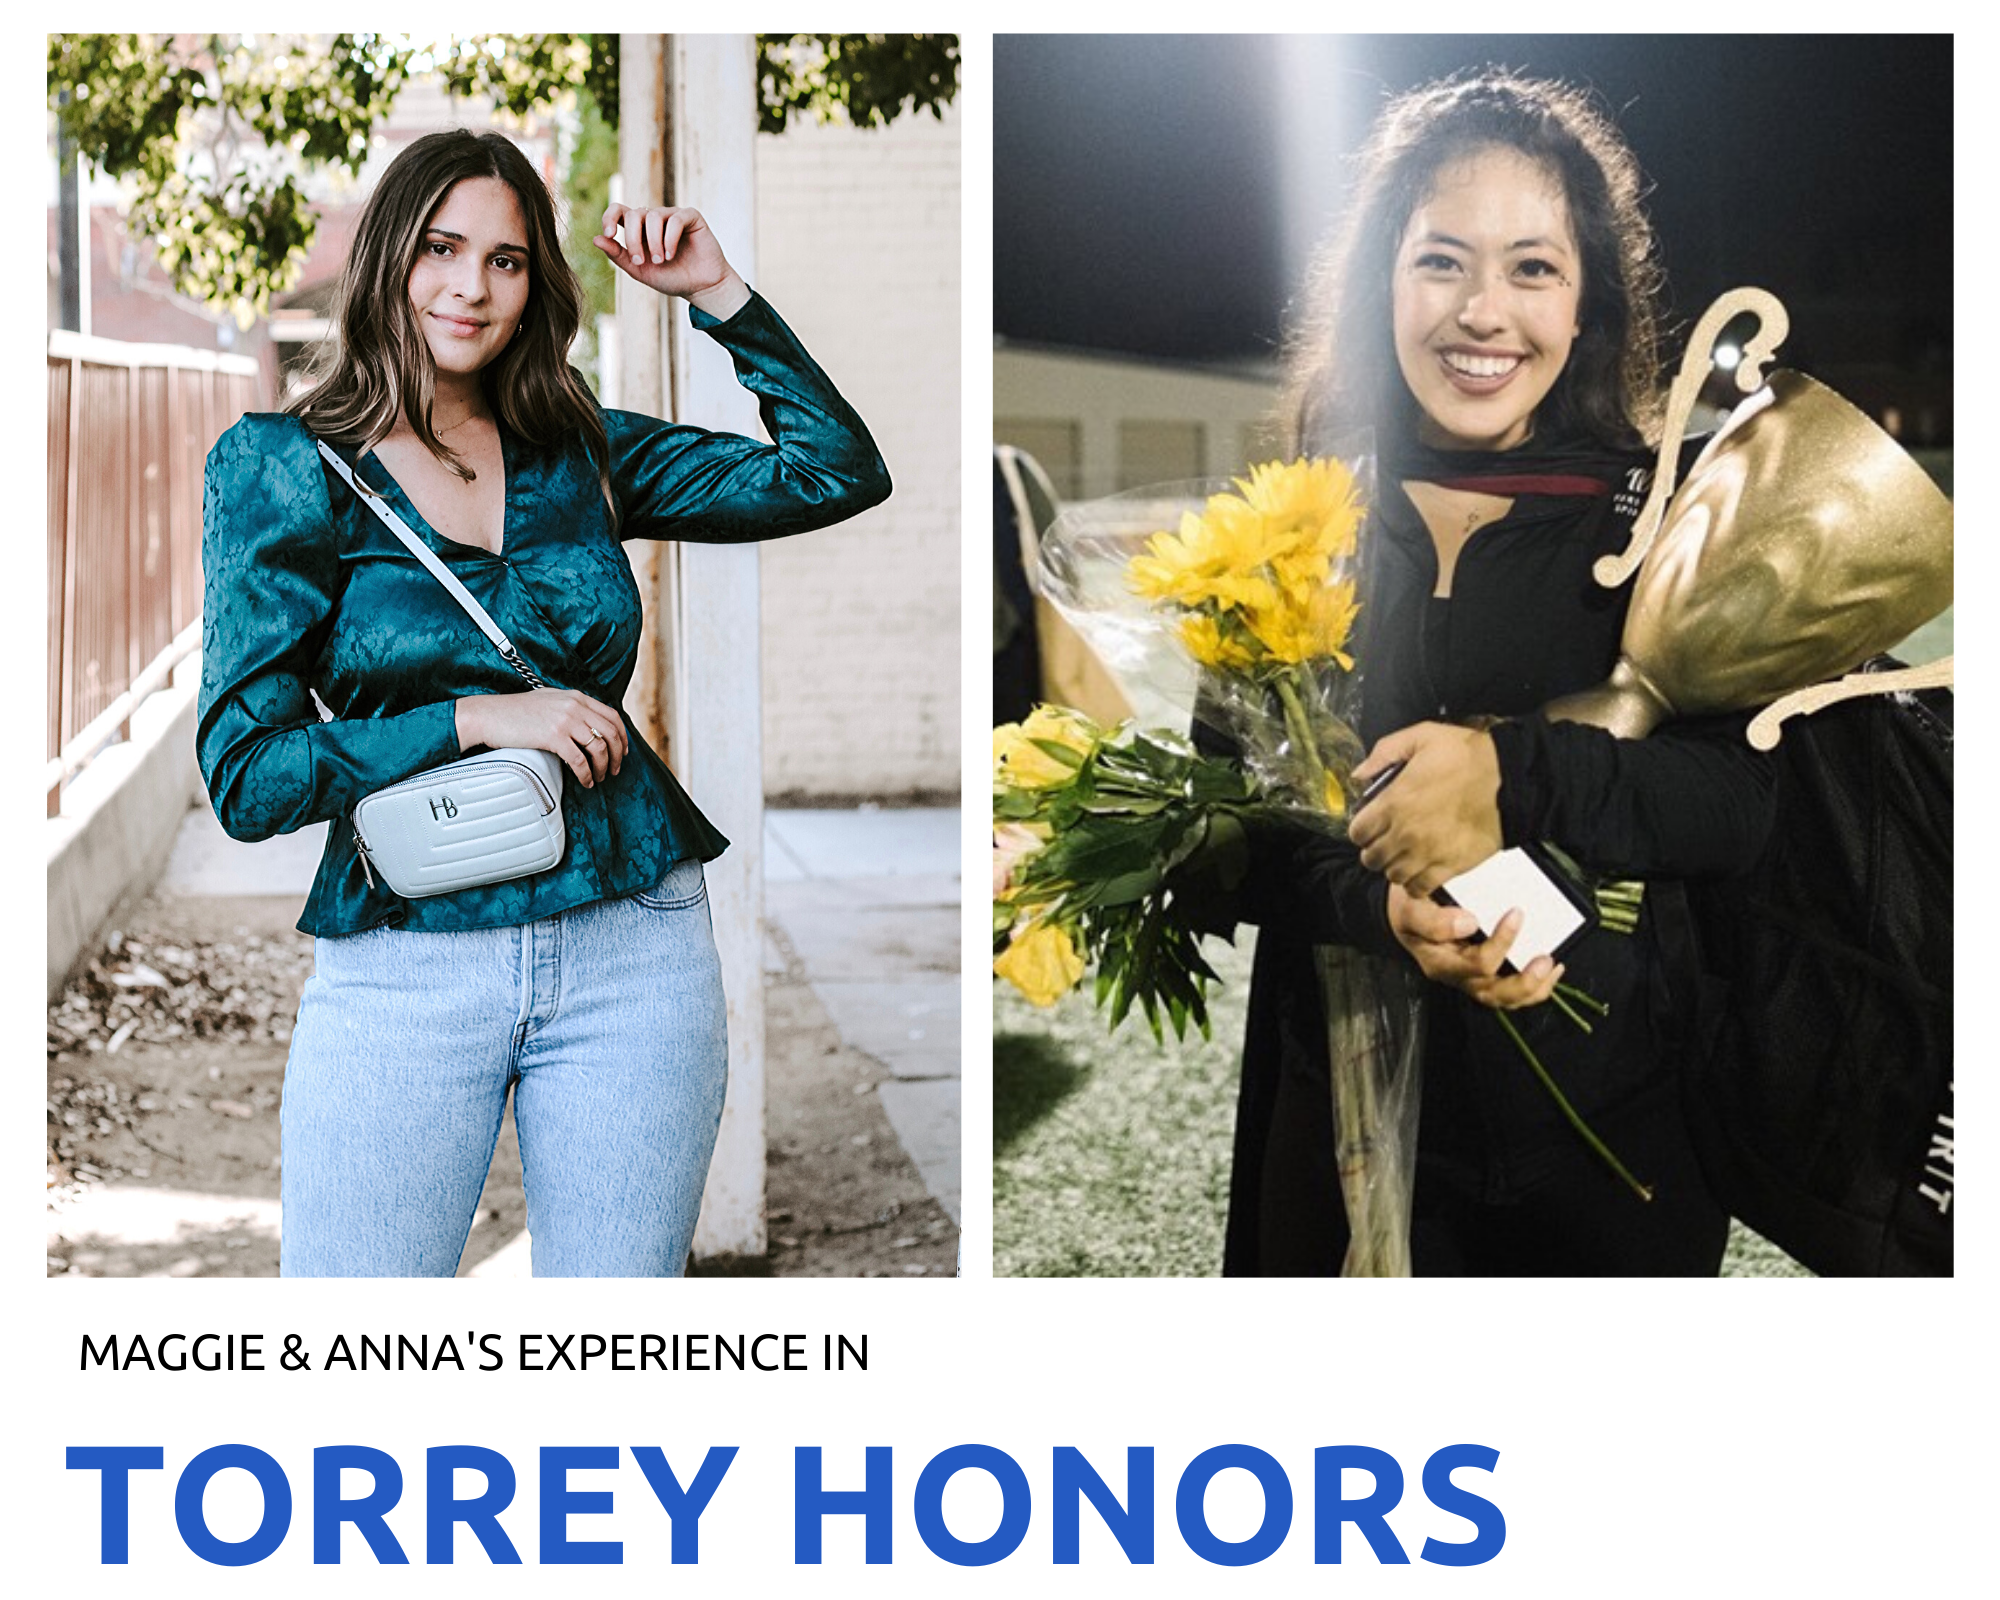 Anna and Maggie's Experience in Torrey Honors